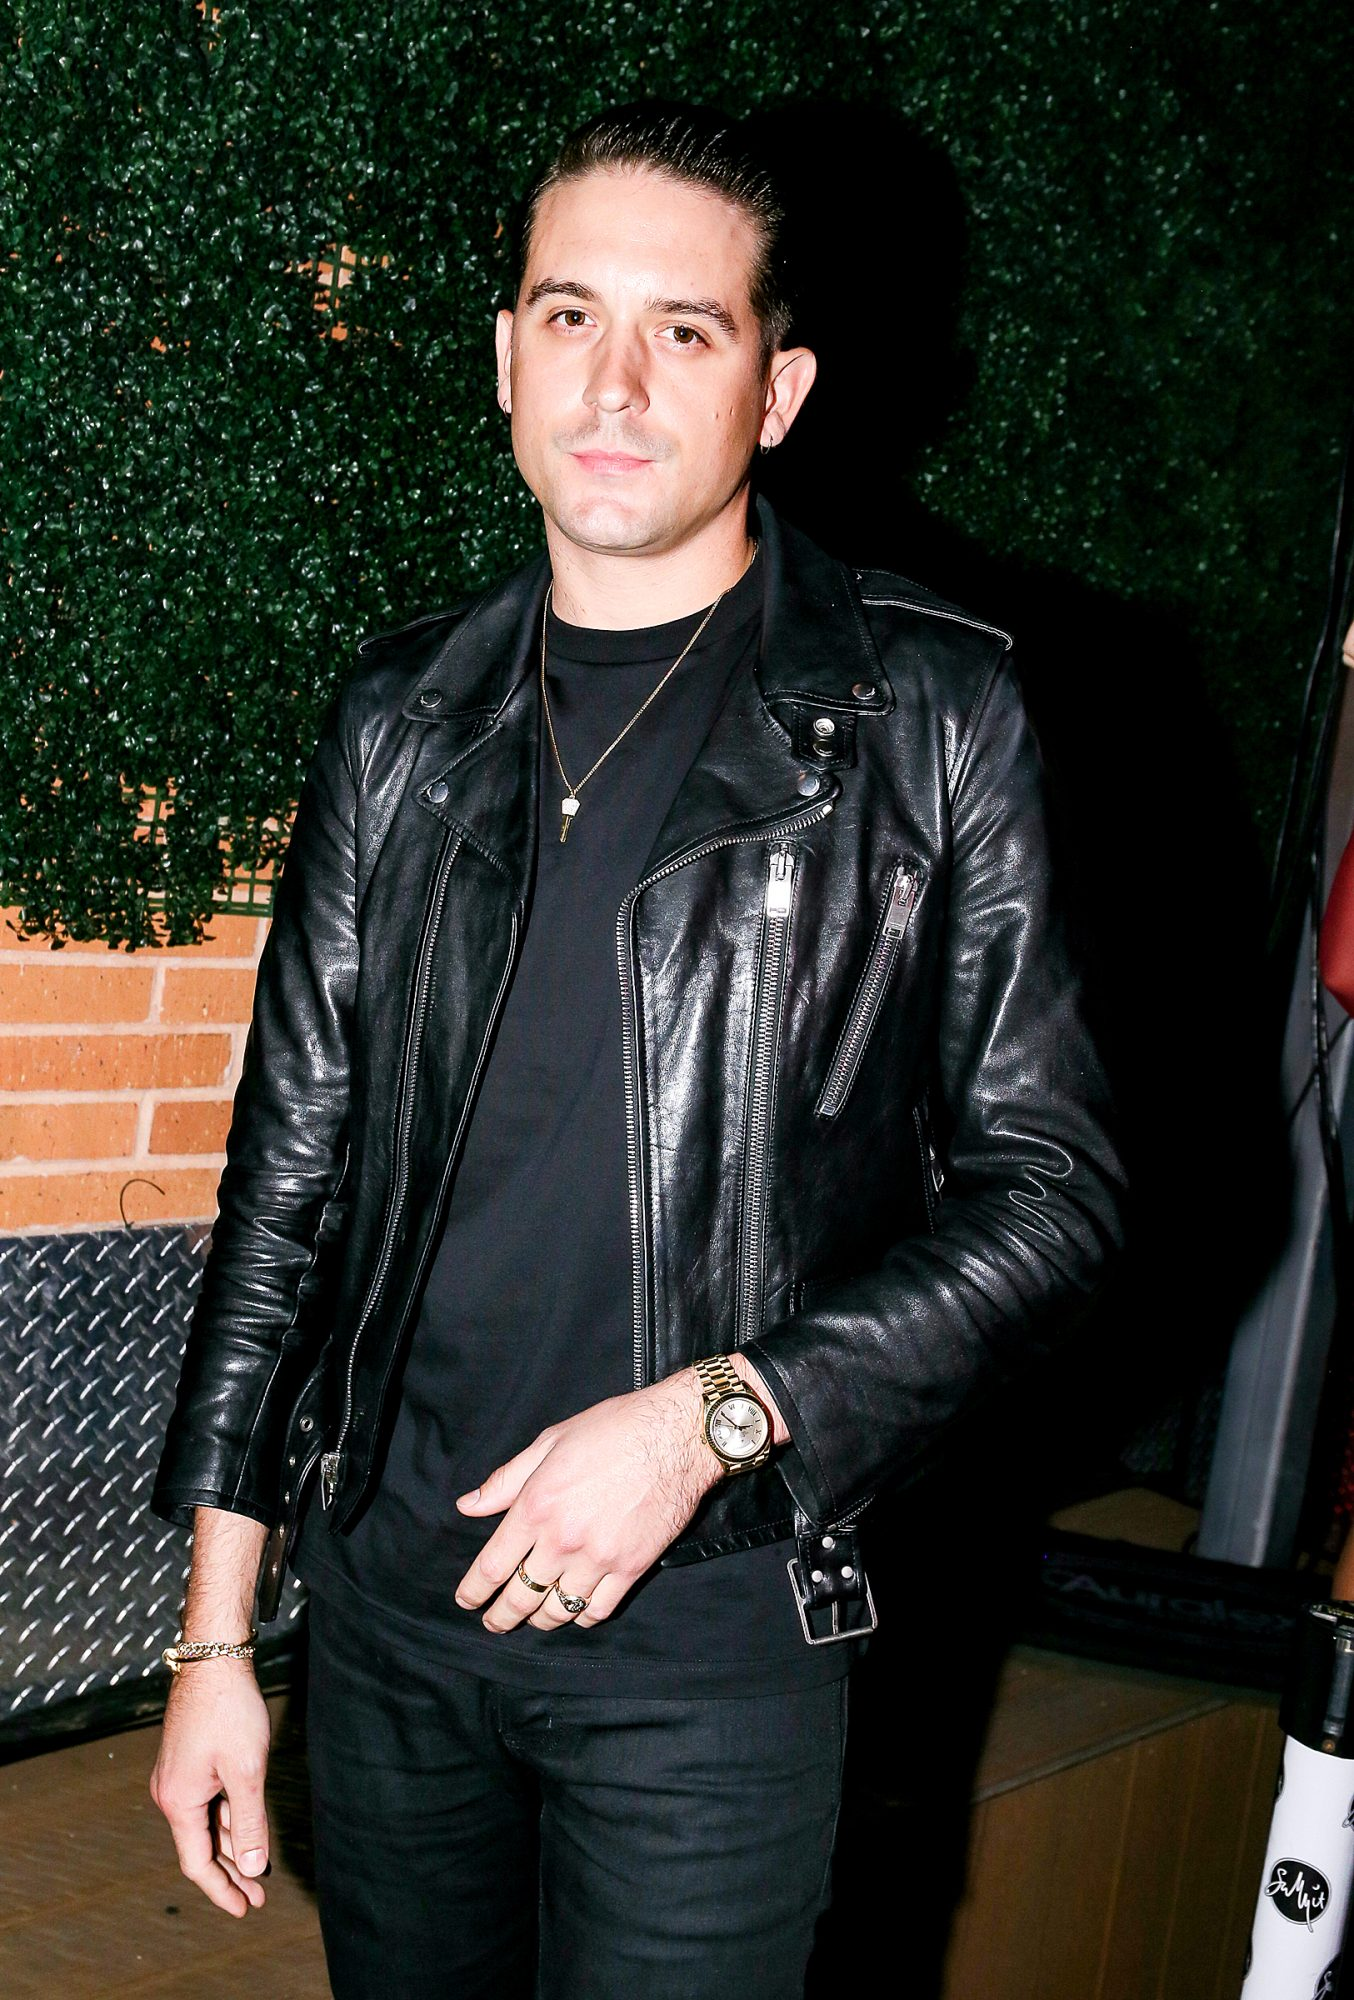 G Eazy at the Austin Elevates event which beneifited local nonprofit organizations: The SAFE Alliance, Superhero Kids and St. David's Foundation Community Fund